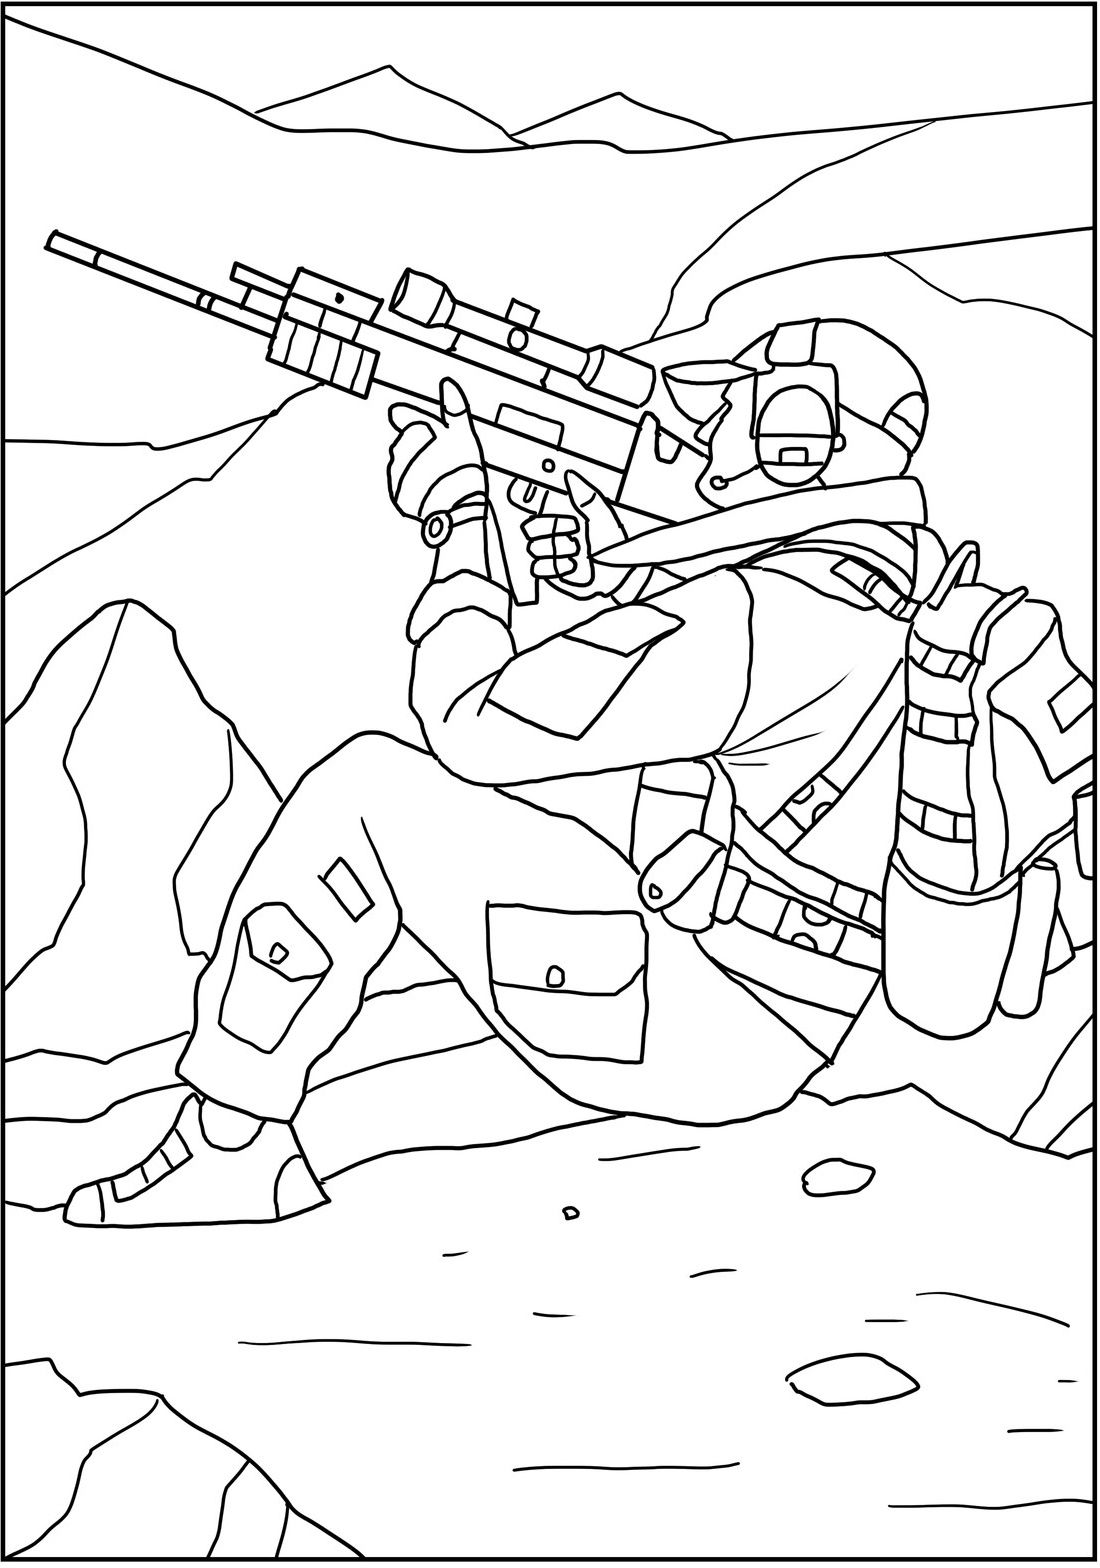 Action scenes with USA special forces. New coloring book